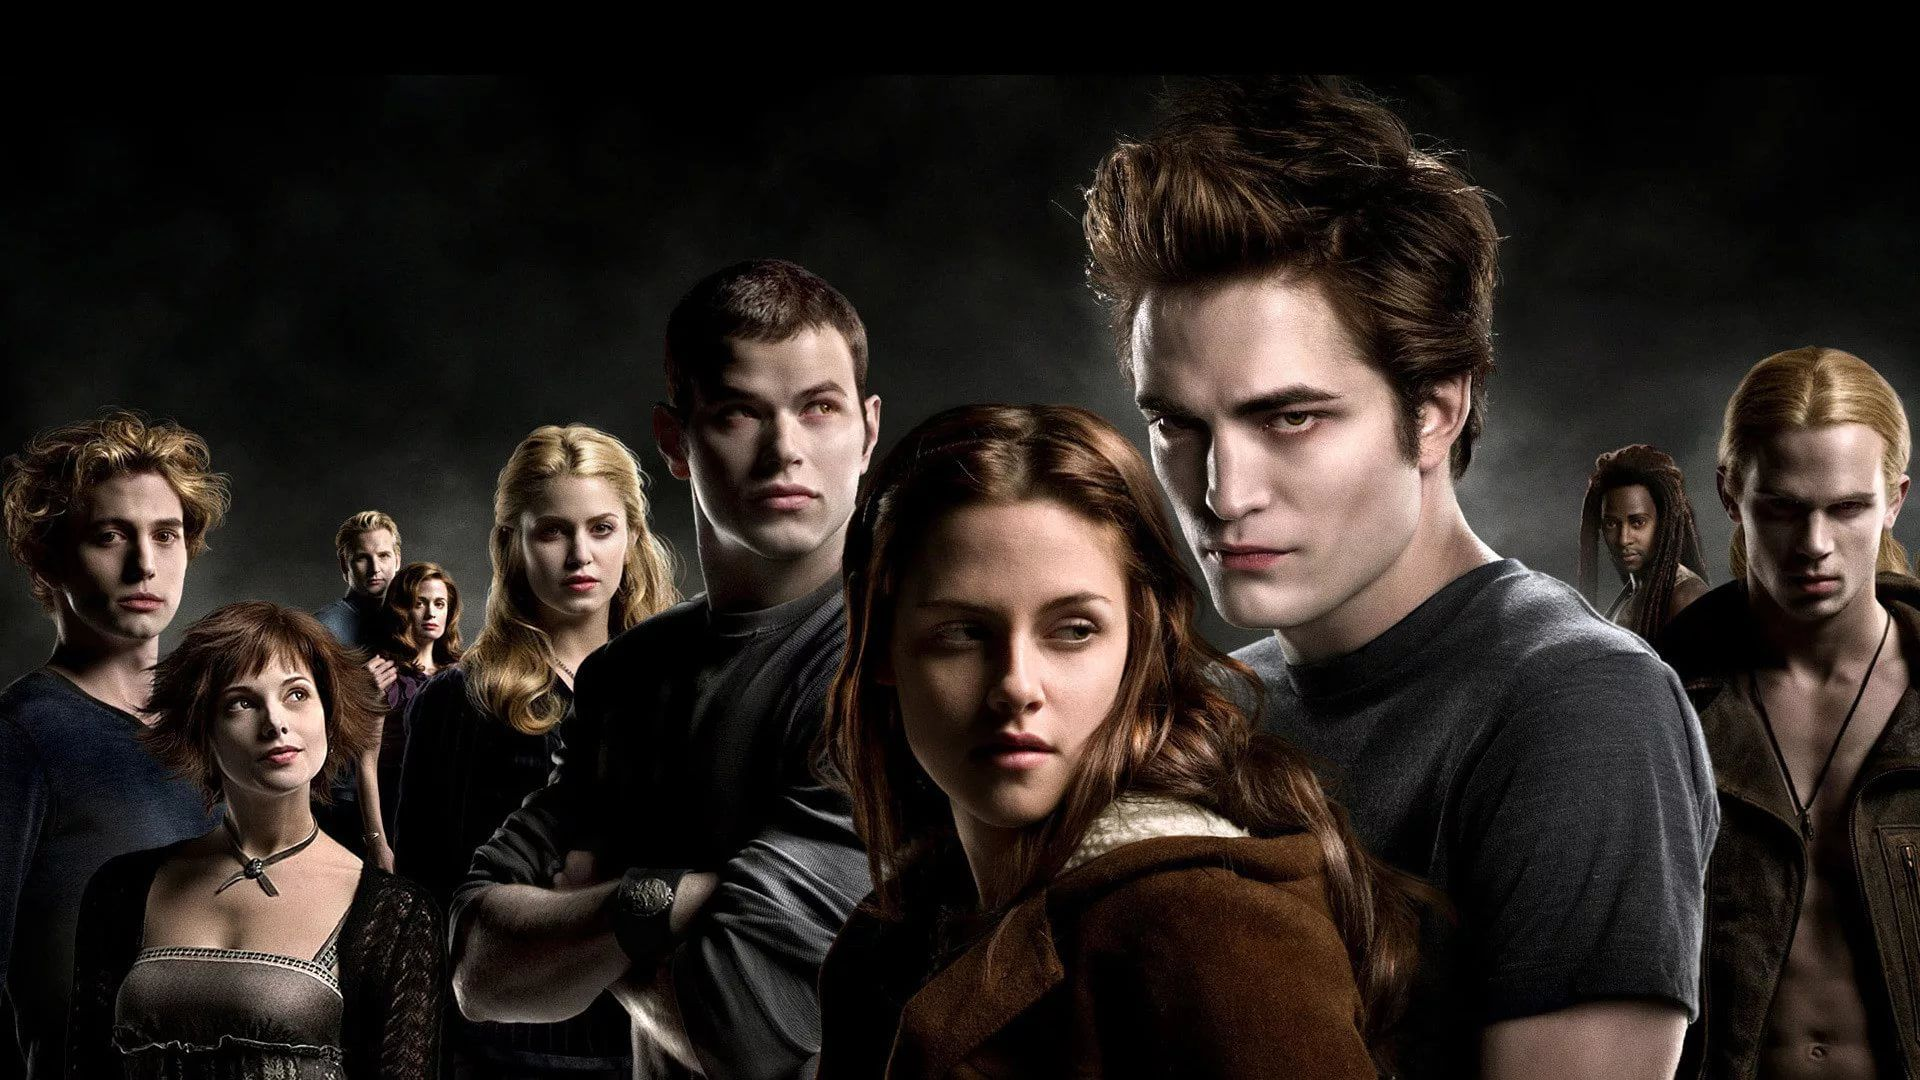 Twilight Saga new wallpaper